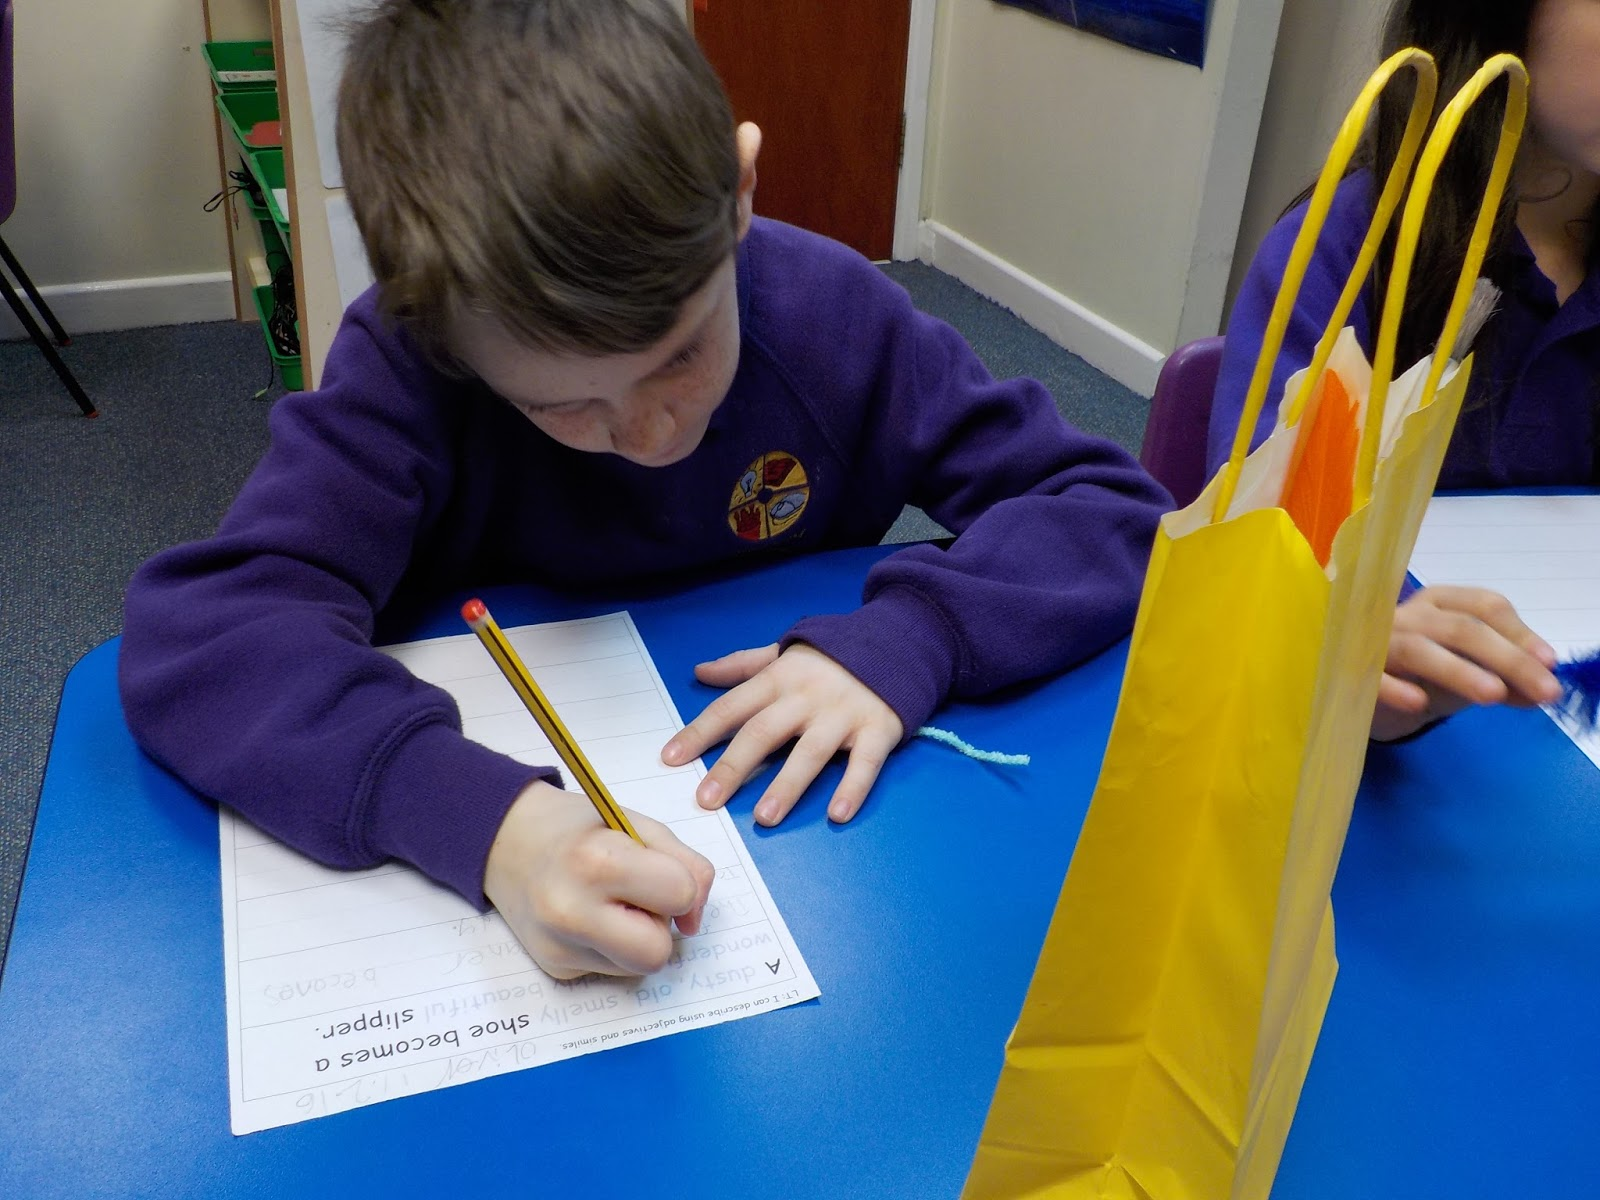 Year Two blog: The Girl With the Yellow Bag